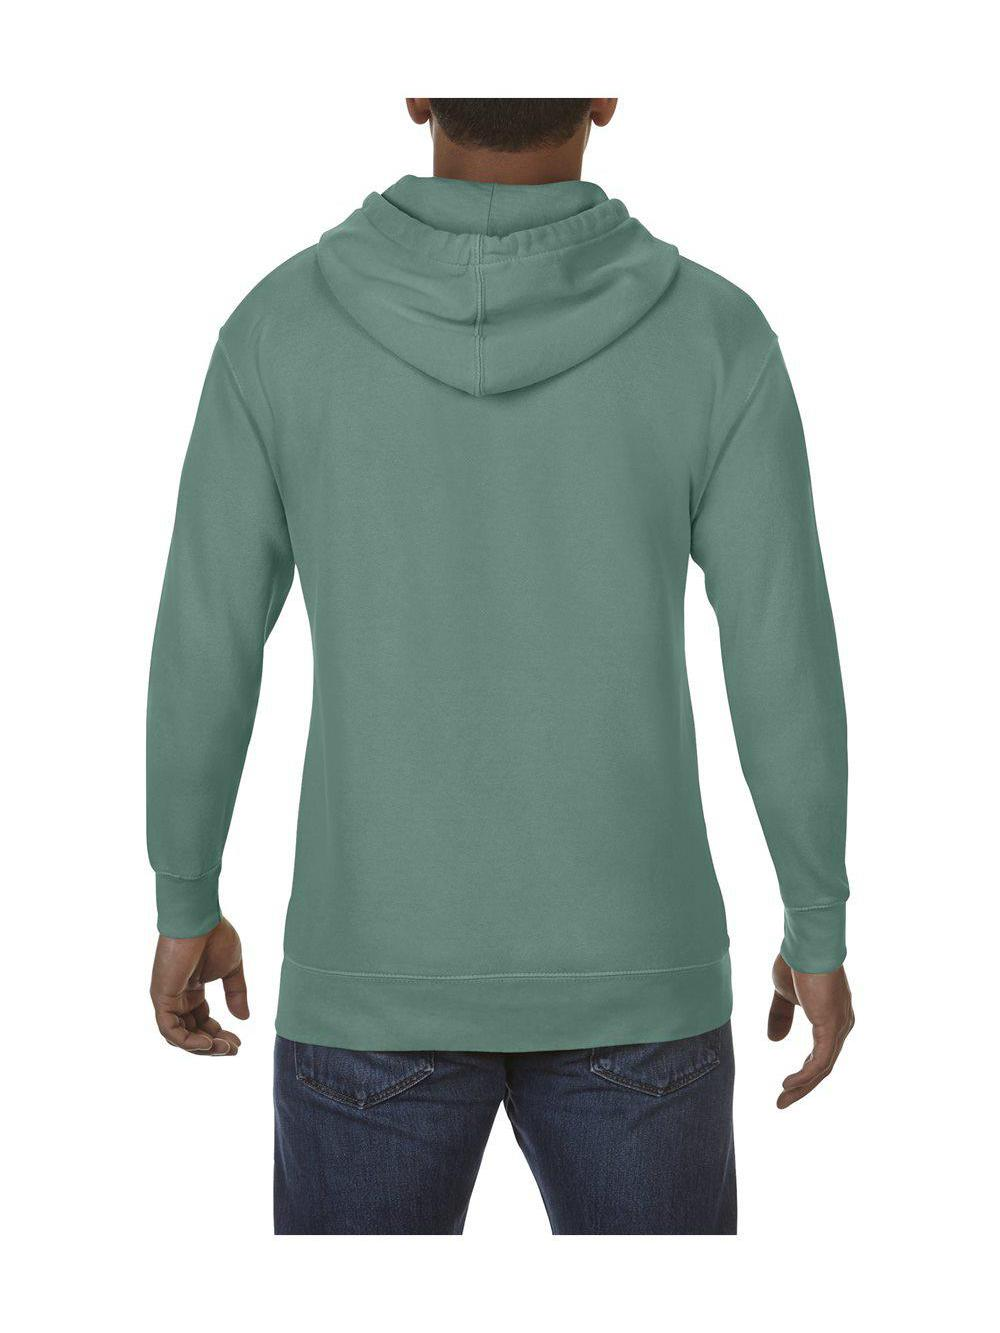 Comfort-Colors-Garment-Dyed-Hooded-Pullover-Sweatshirt-1567 thumbnail 24